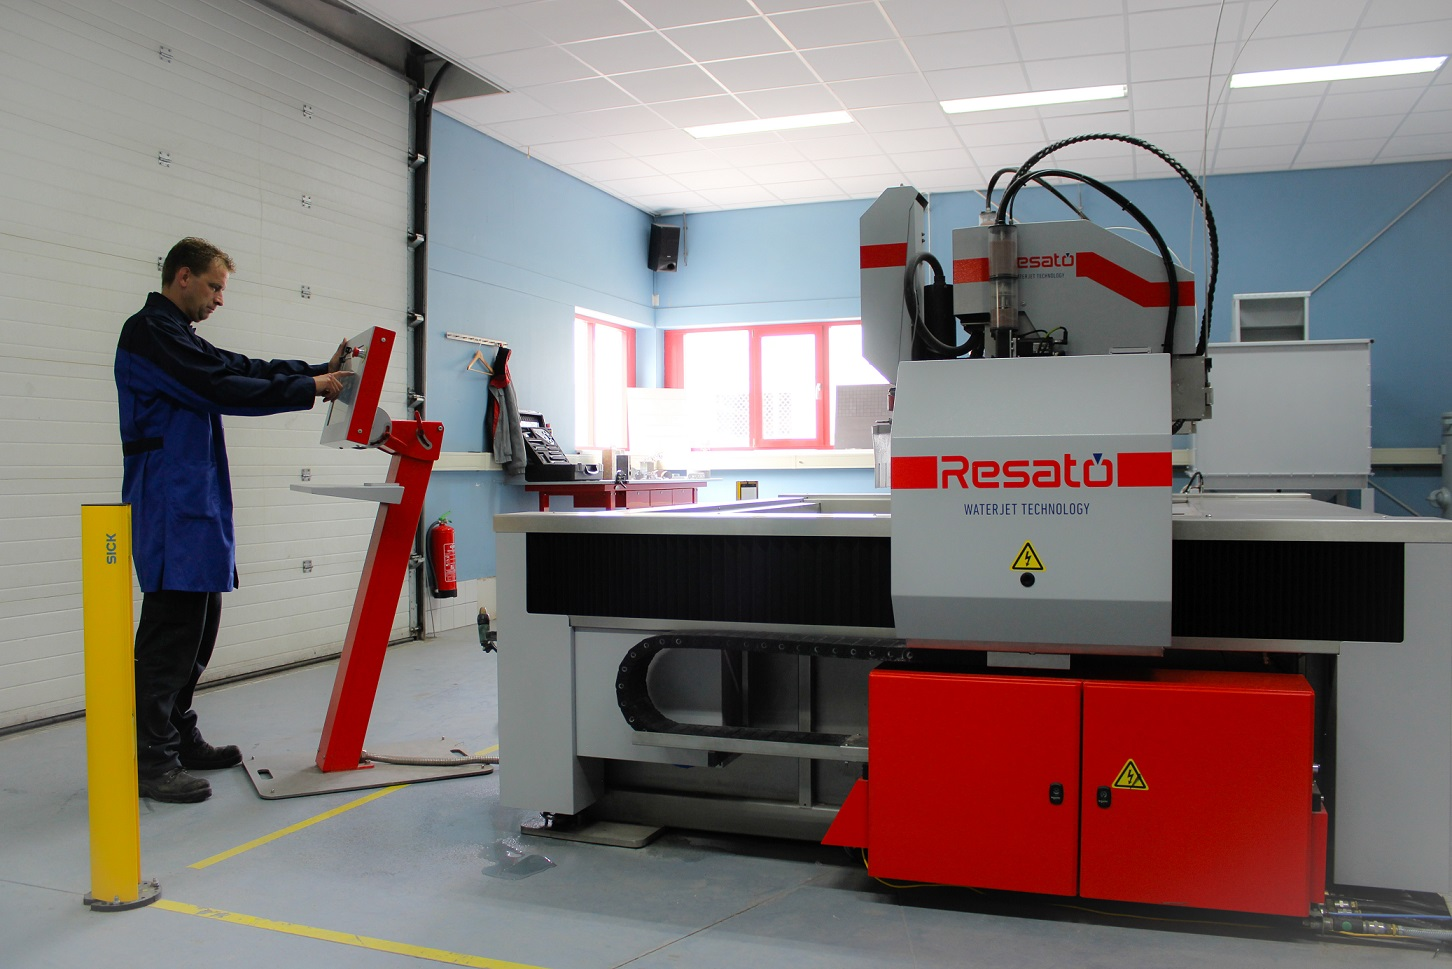 Water jet cutting to improve the component production process